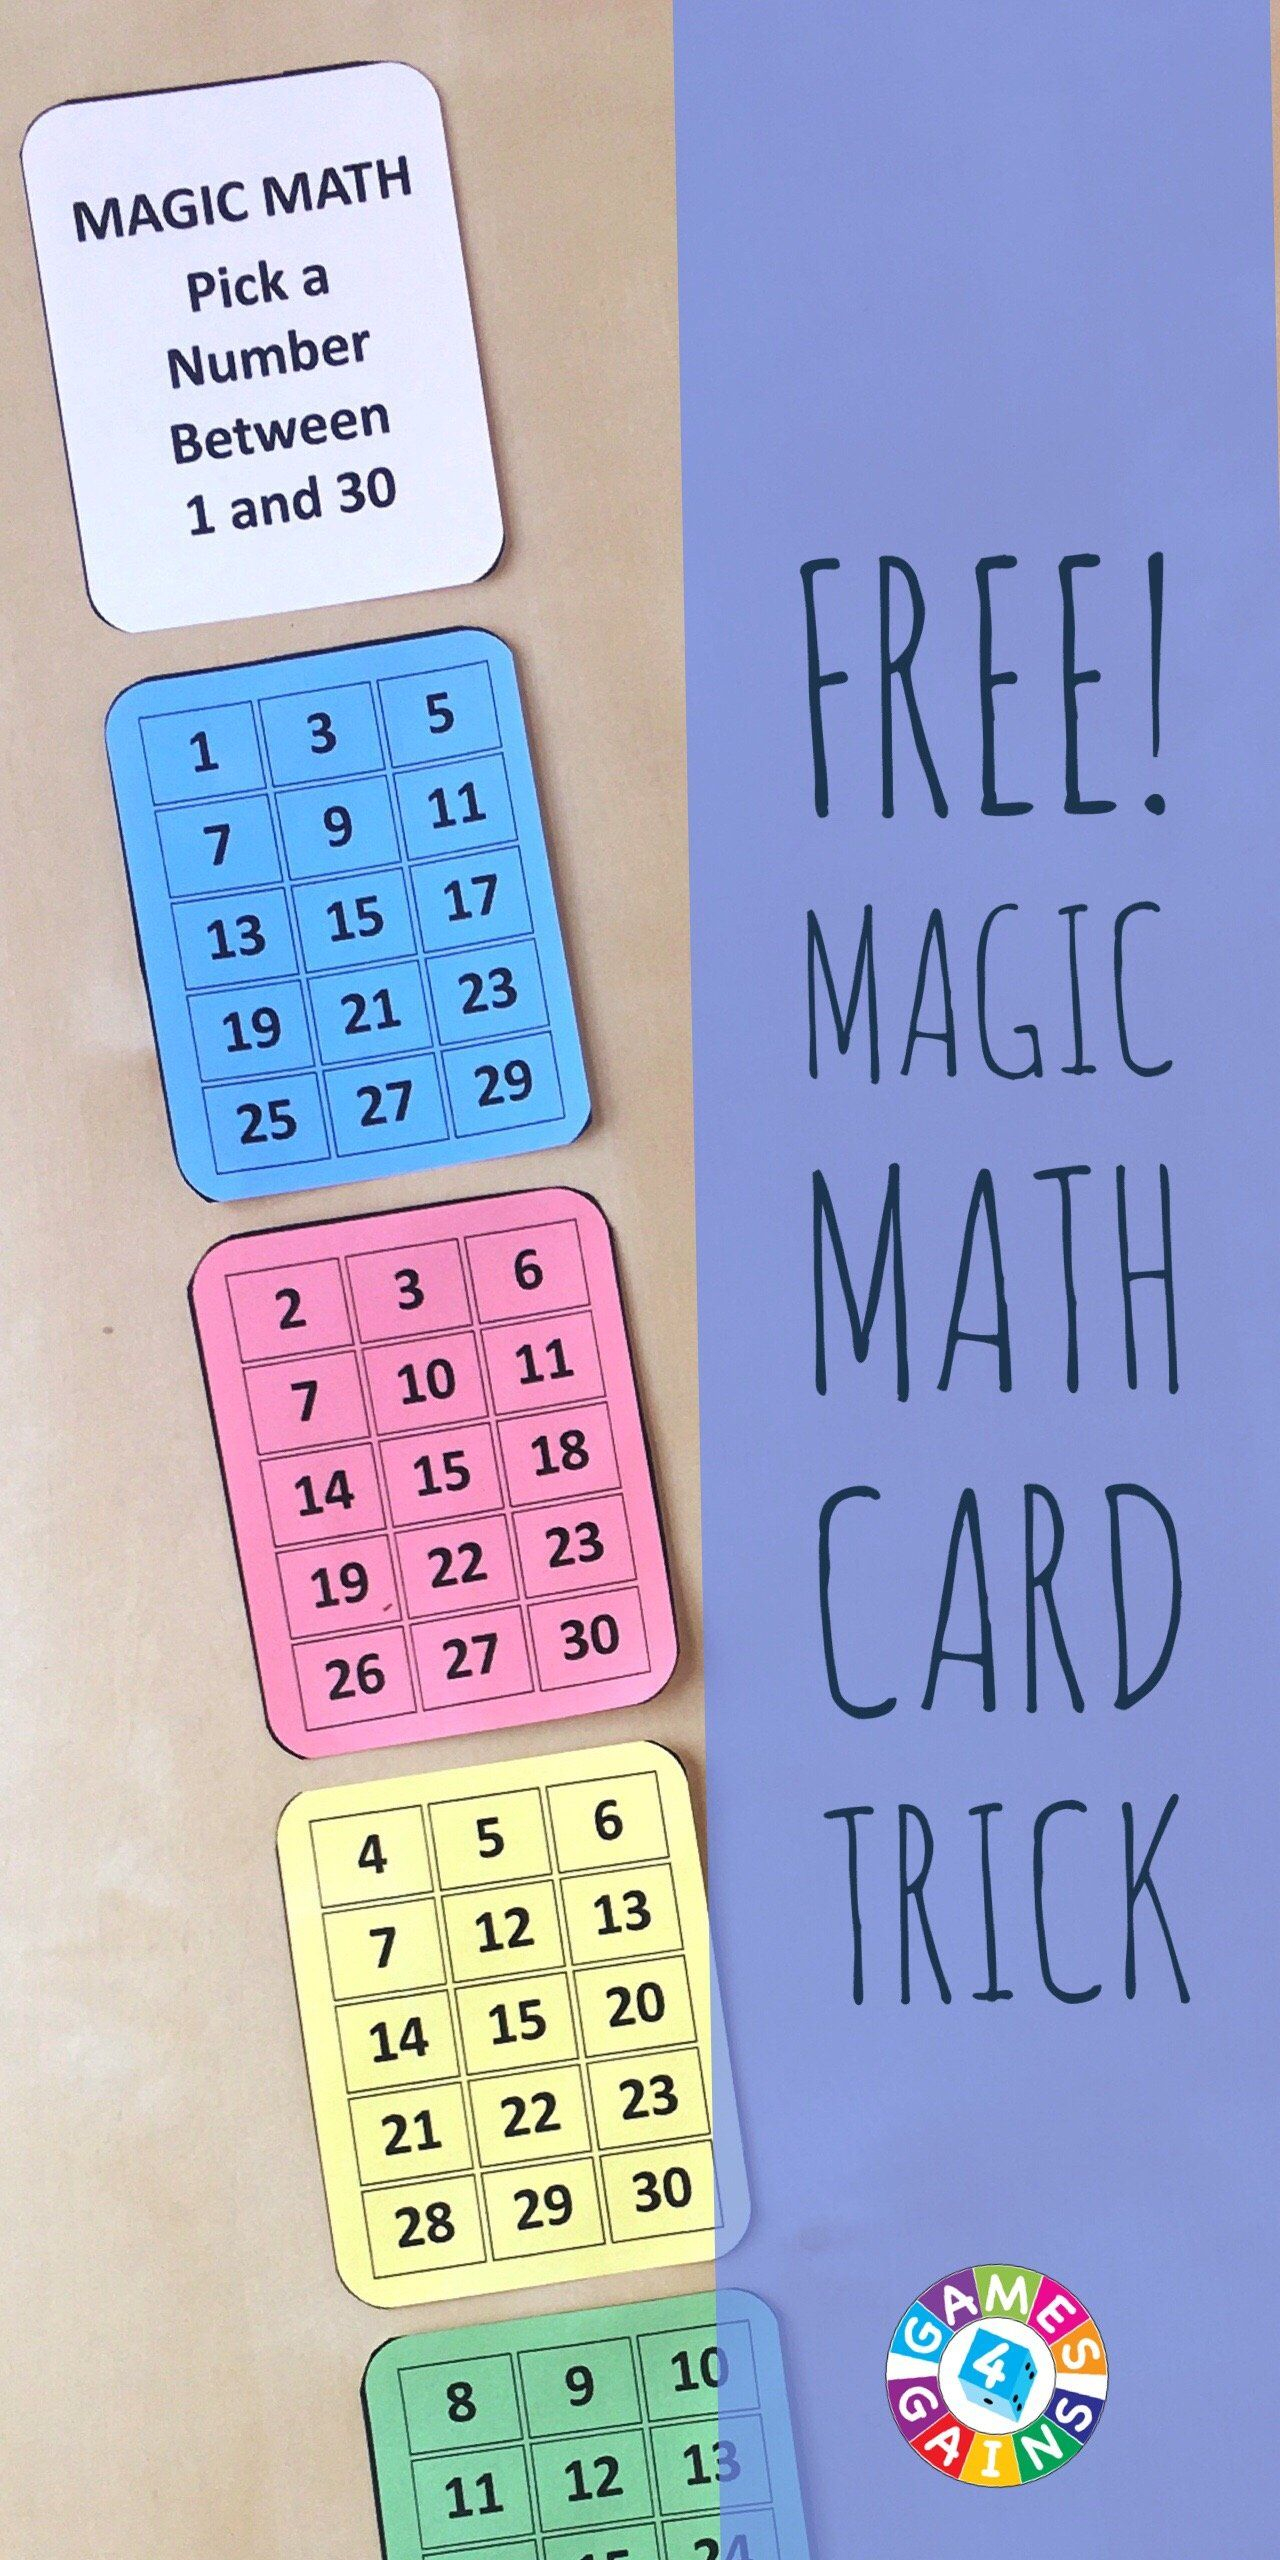 Amaze Your Students With This Math Magic Trick! | Math Magic